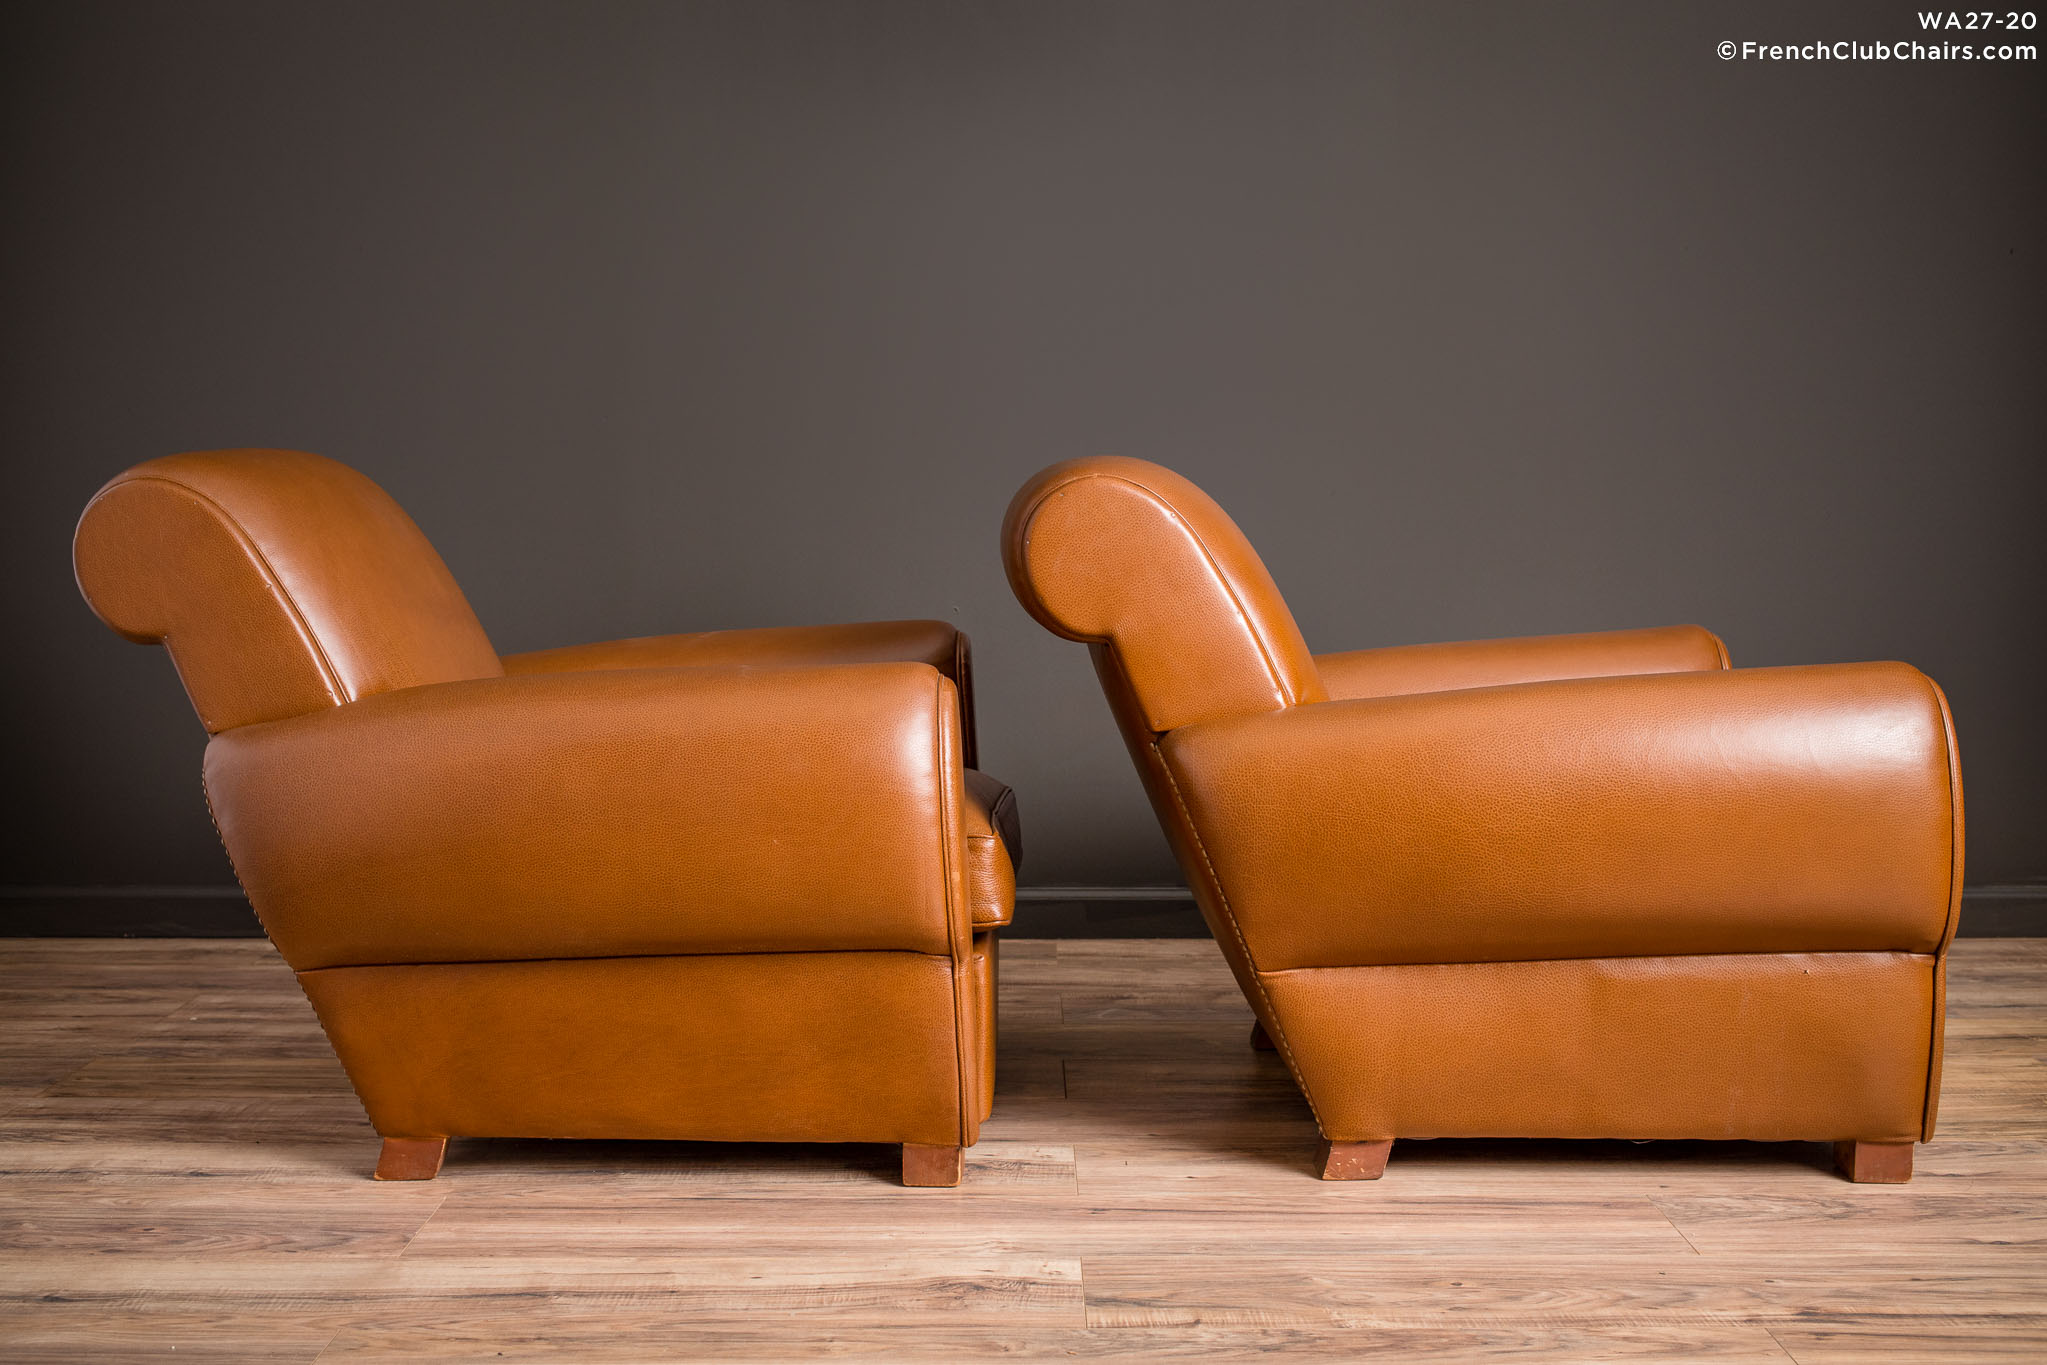 WA_27-20_Peu_de_Couchon_Rollback_Pair_R_3RT-v01-williams-antiks-leather-french-club-chair-wa_fcccom